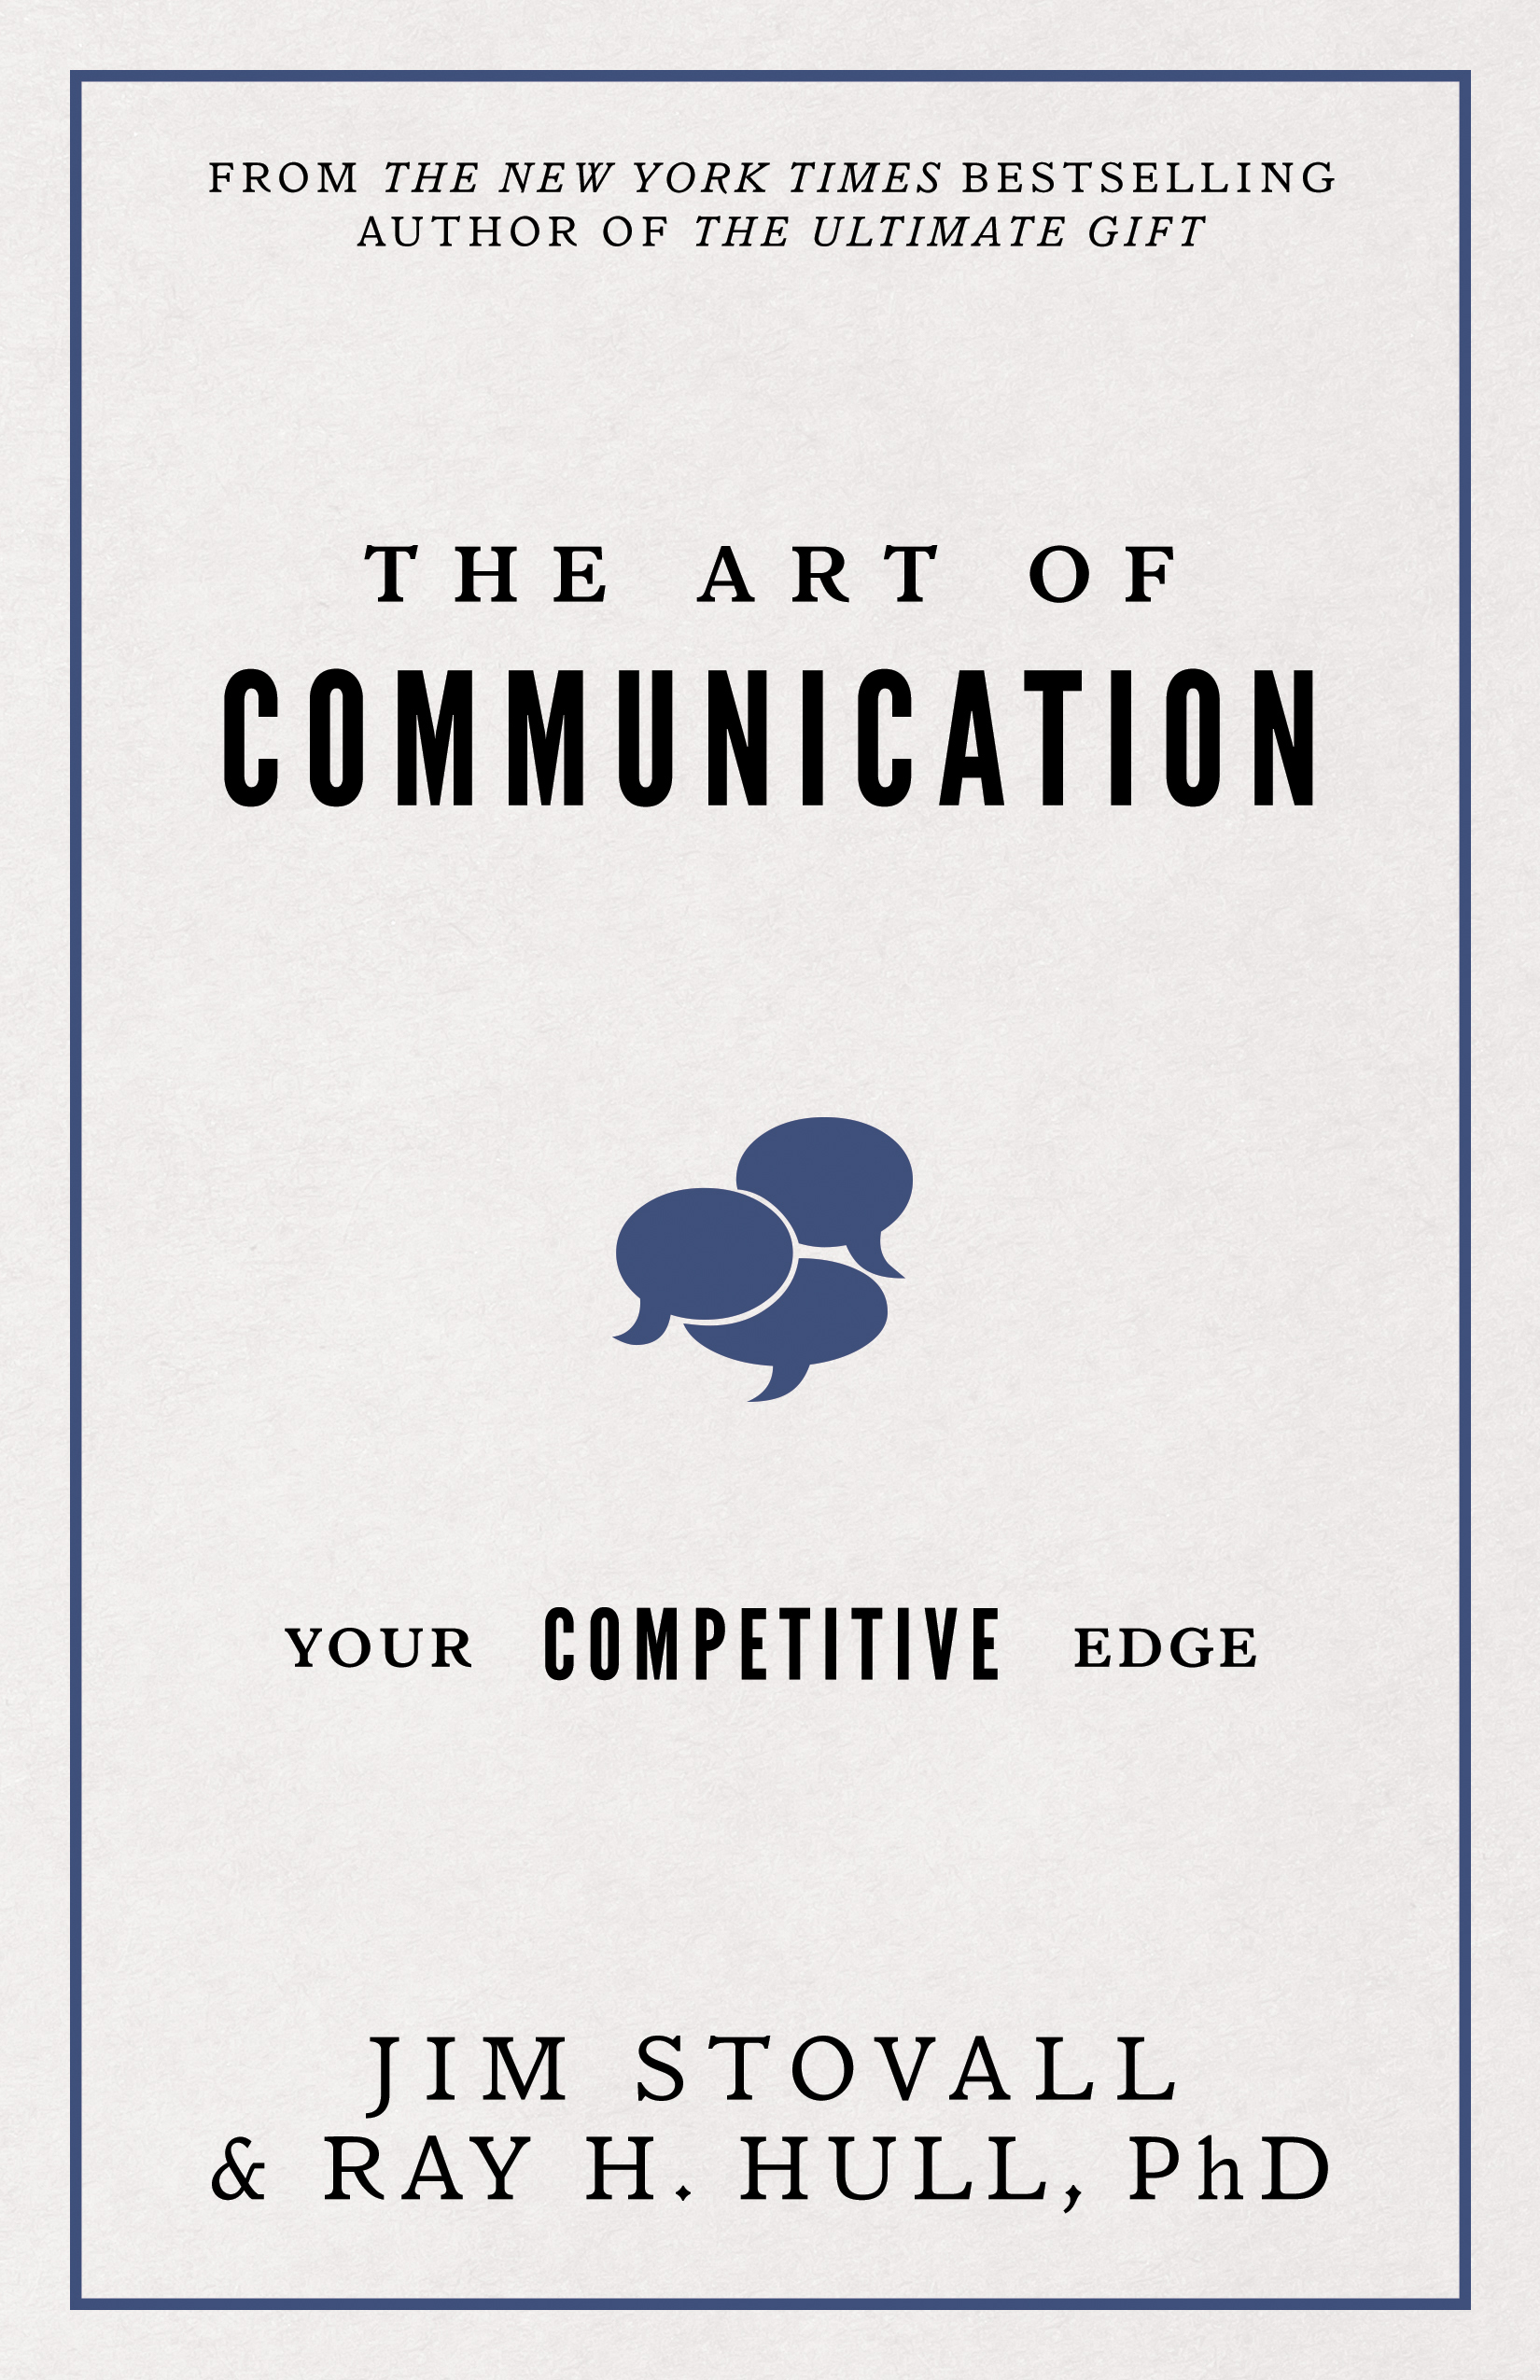 The Art of Communication - Jim Stovall